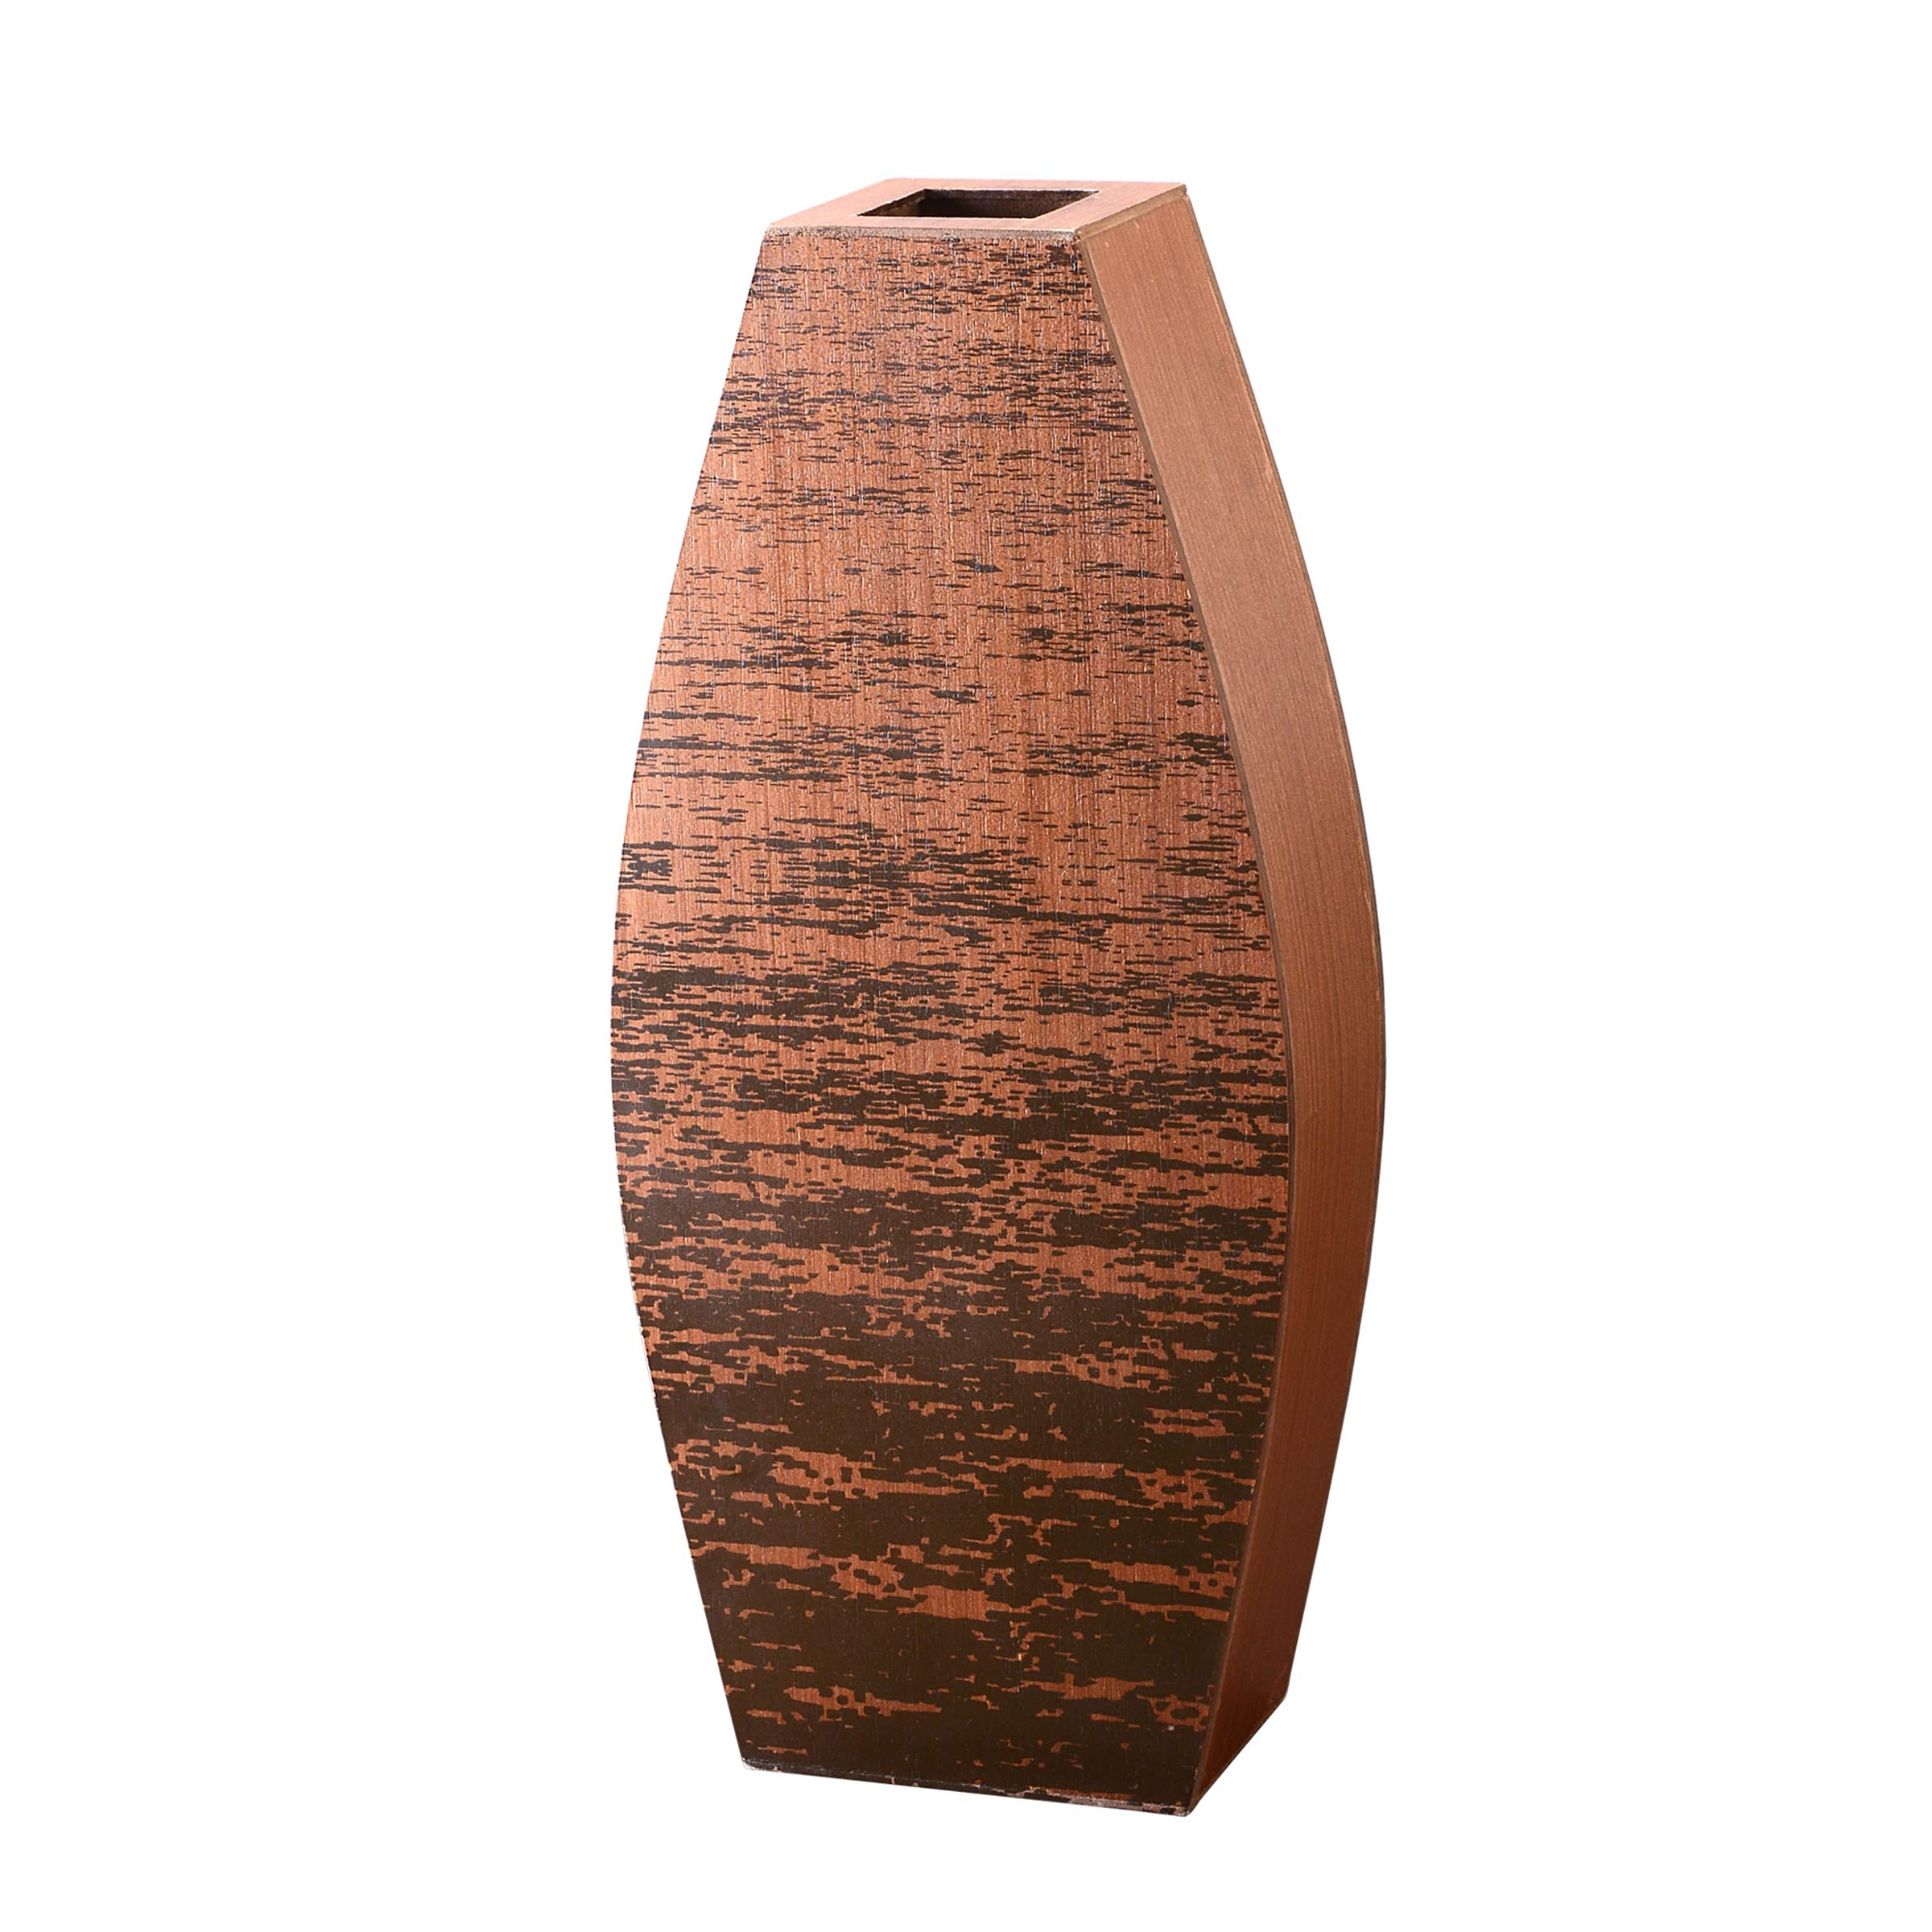 "CDM product Villacera Mango Wood 20"" Cylinder Floor Vase 